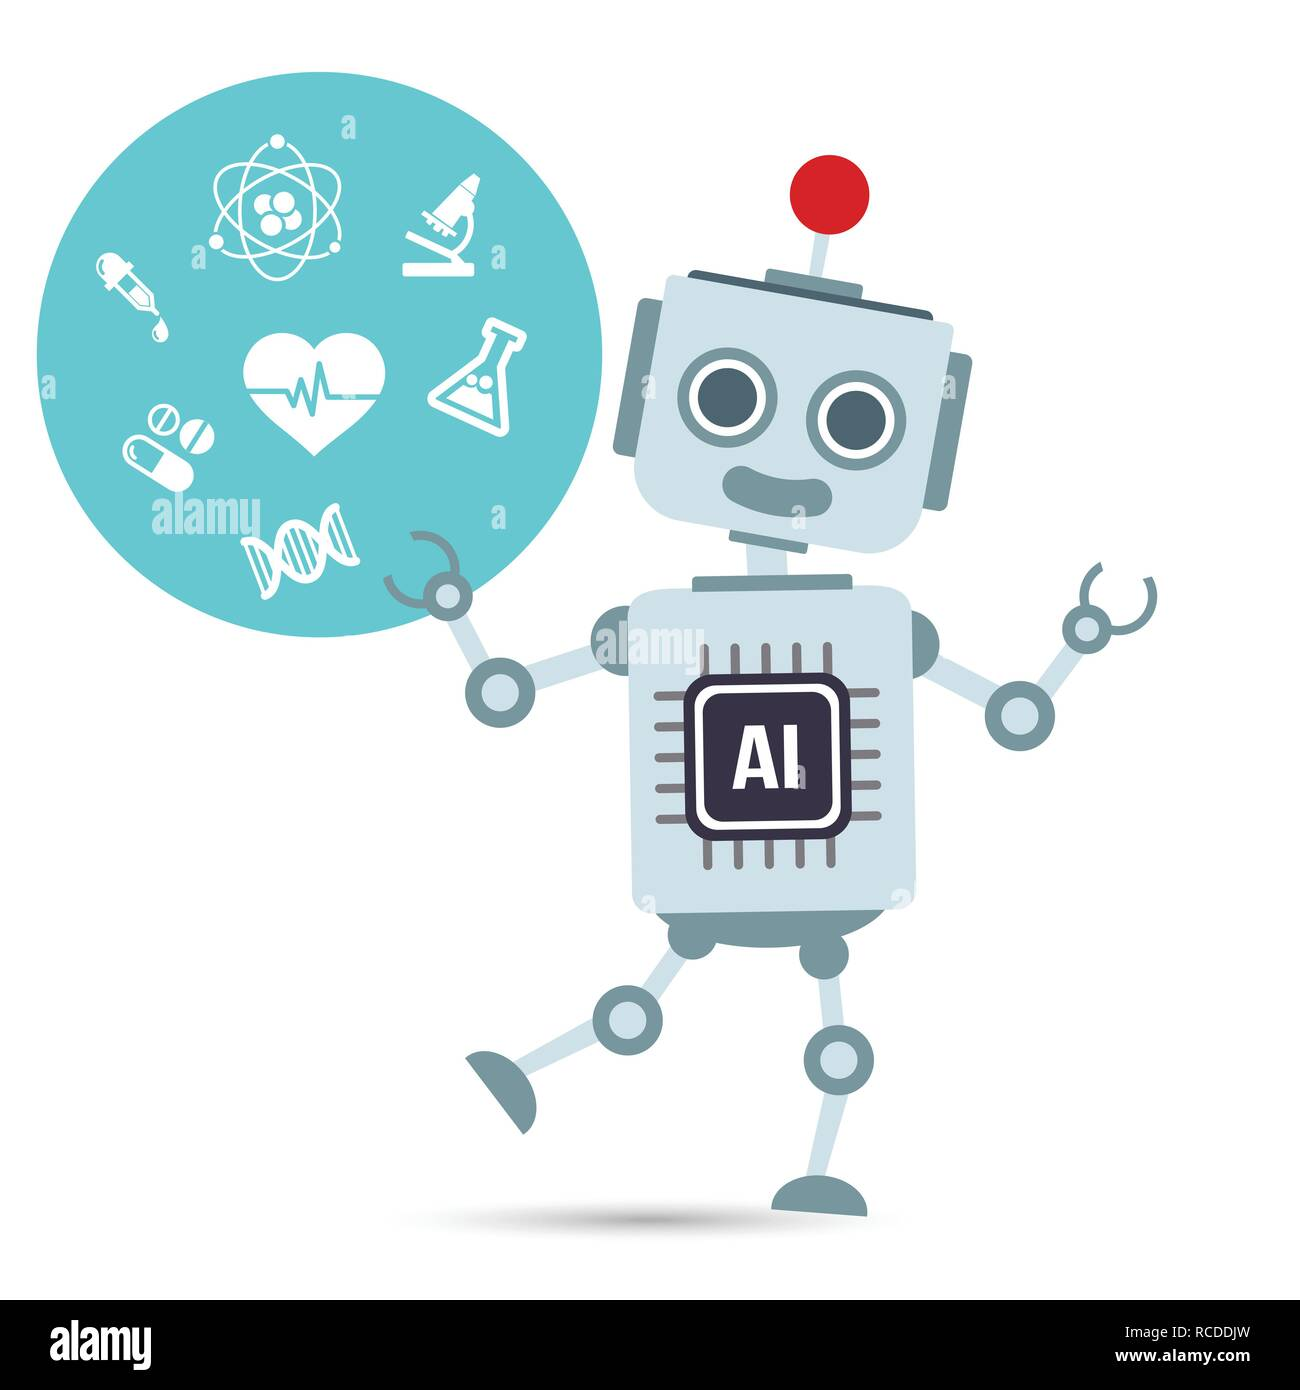 AI Artificial intelligence Technology robot with medical element vector illustration eps10 Stock Vector